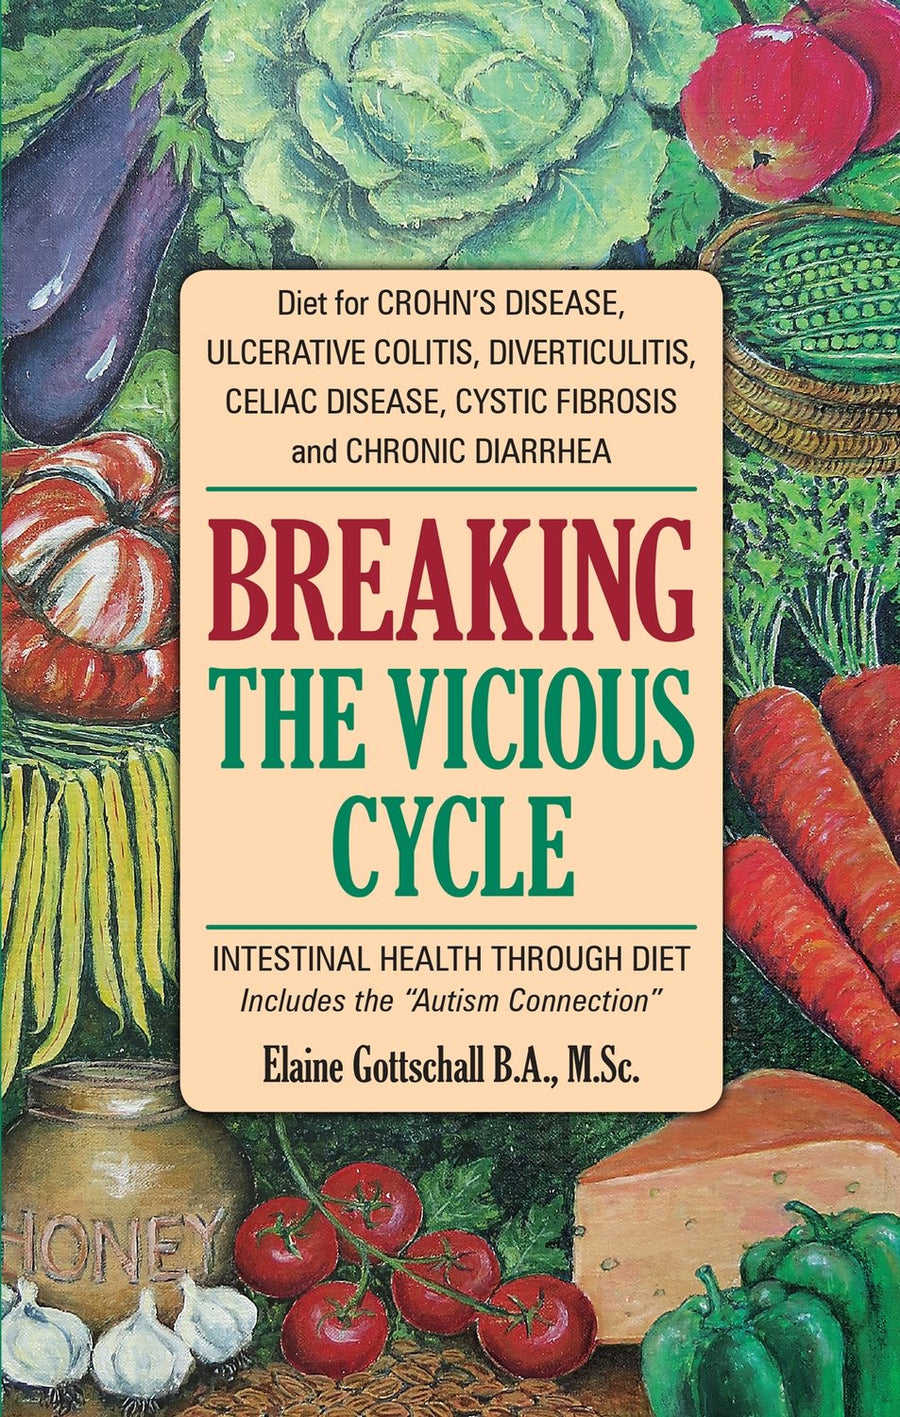 Breaking the Vicious Cycle was written by Elaine Gottschall, biochemist and cell biologist.